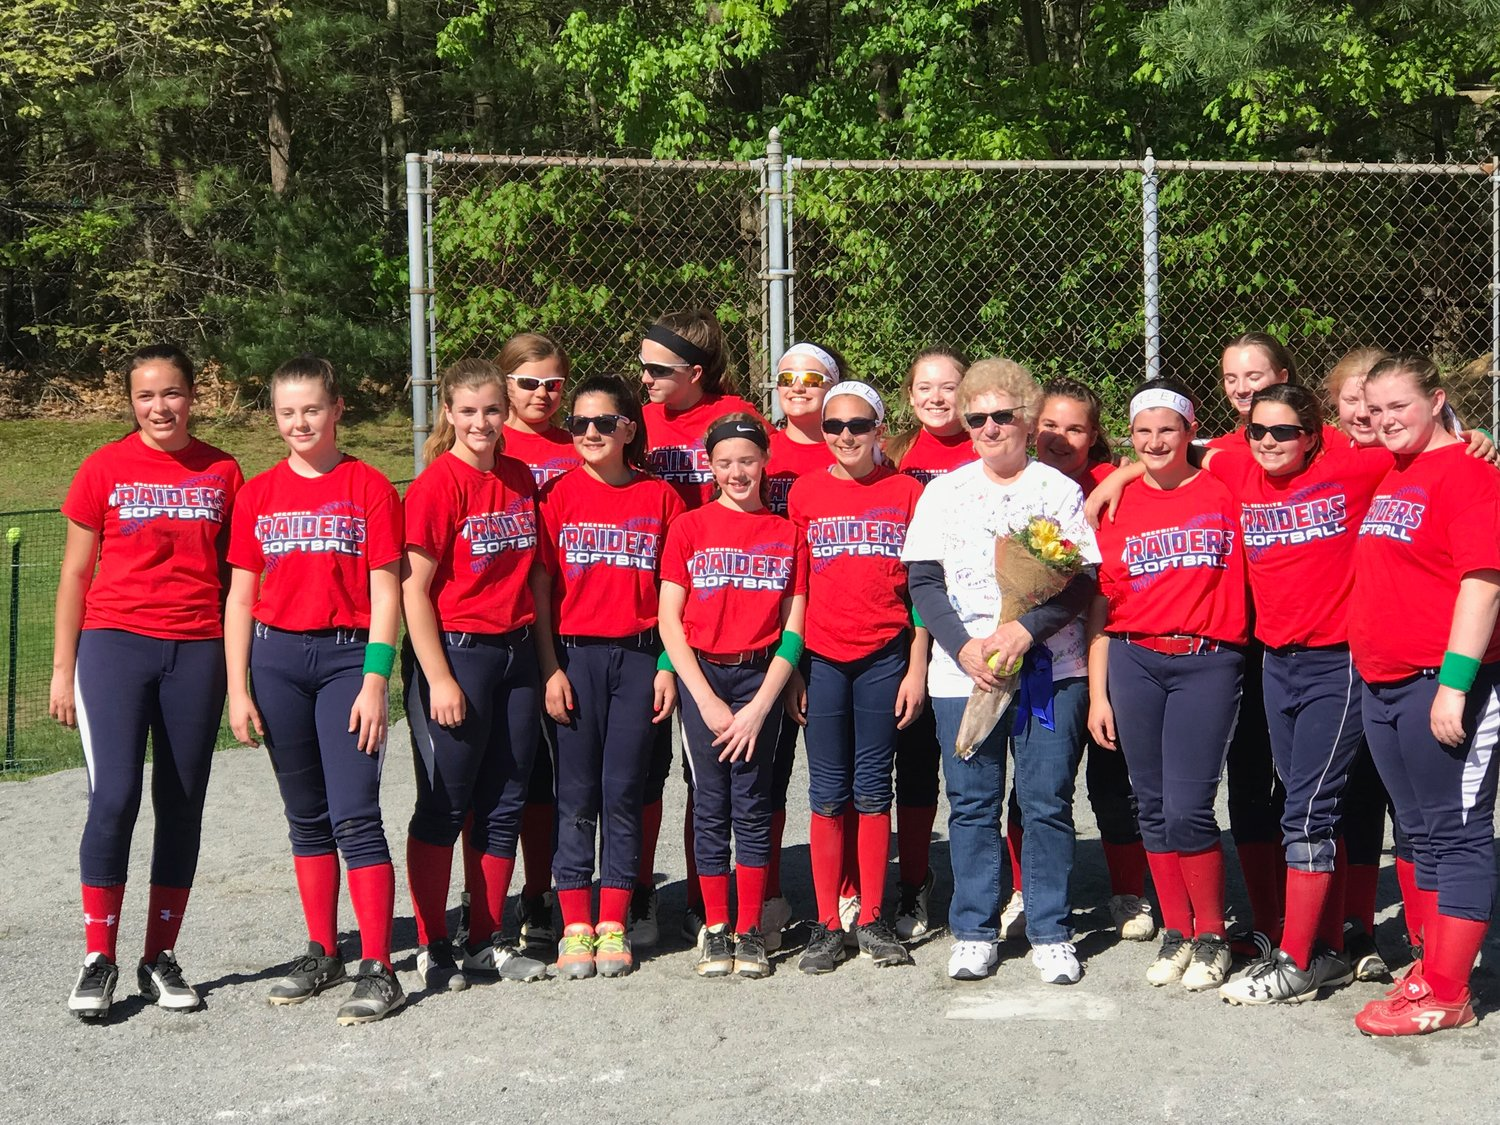 Lady Raiders with Liz Chellel the first Lady Raiders Softball Coach